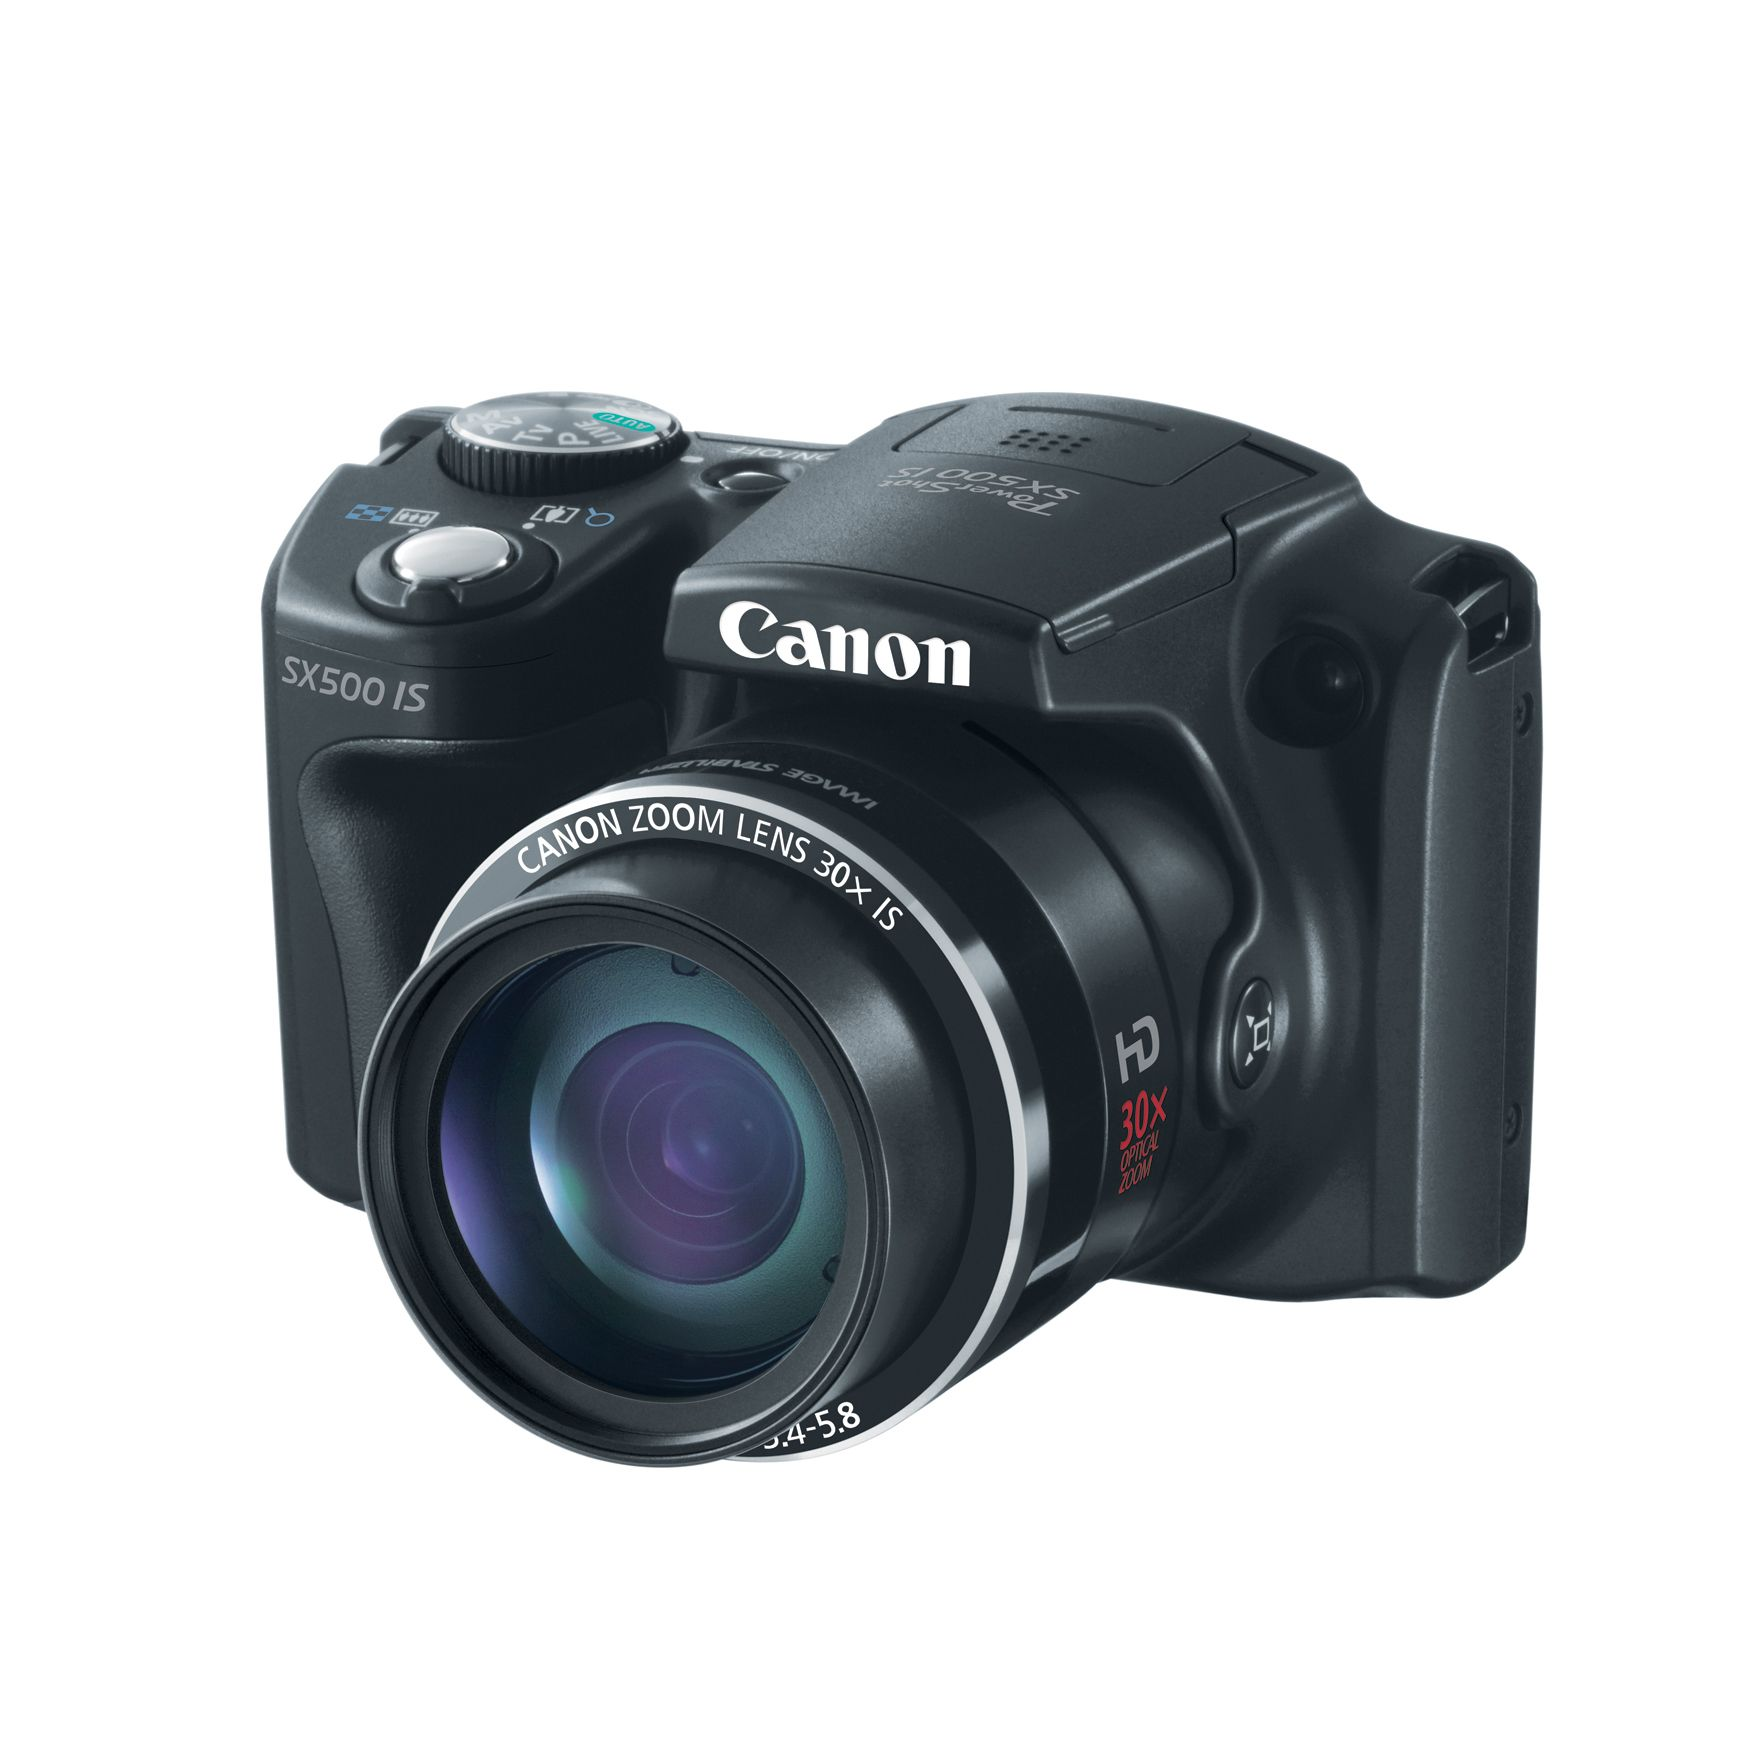 Canon Powershot SX500 IS - Black